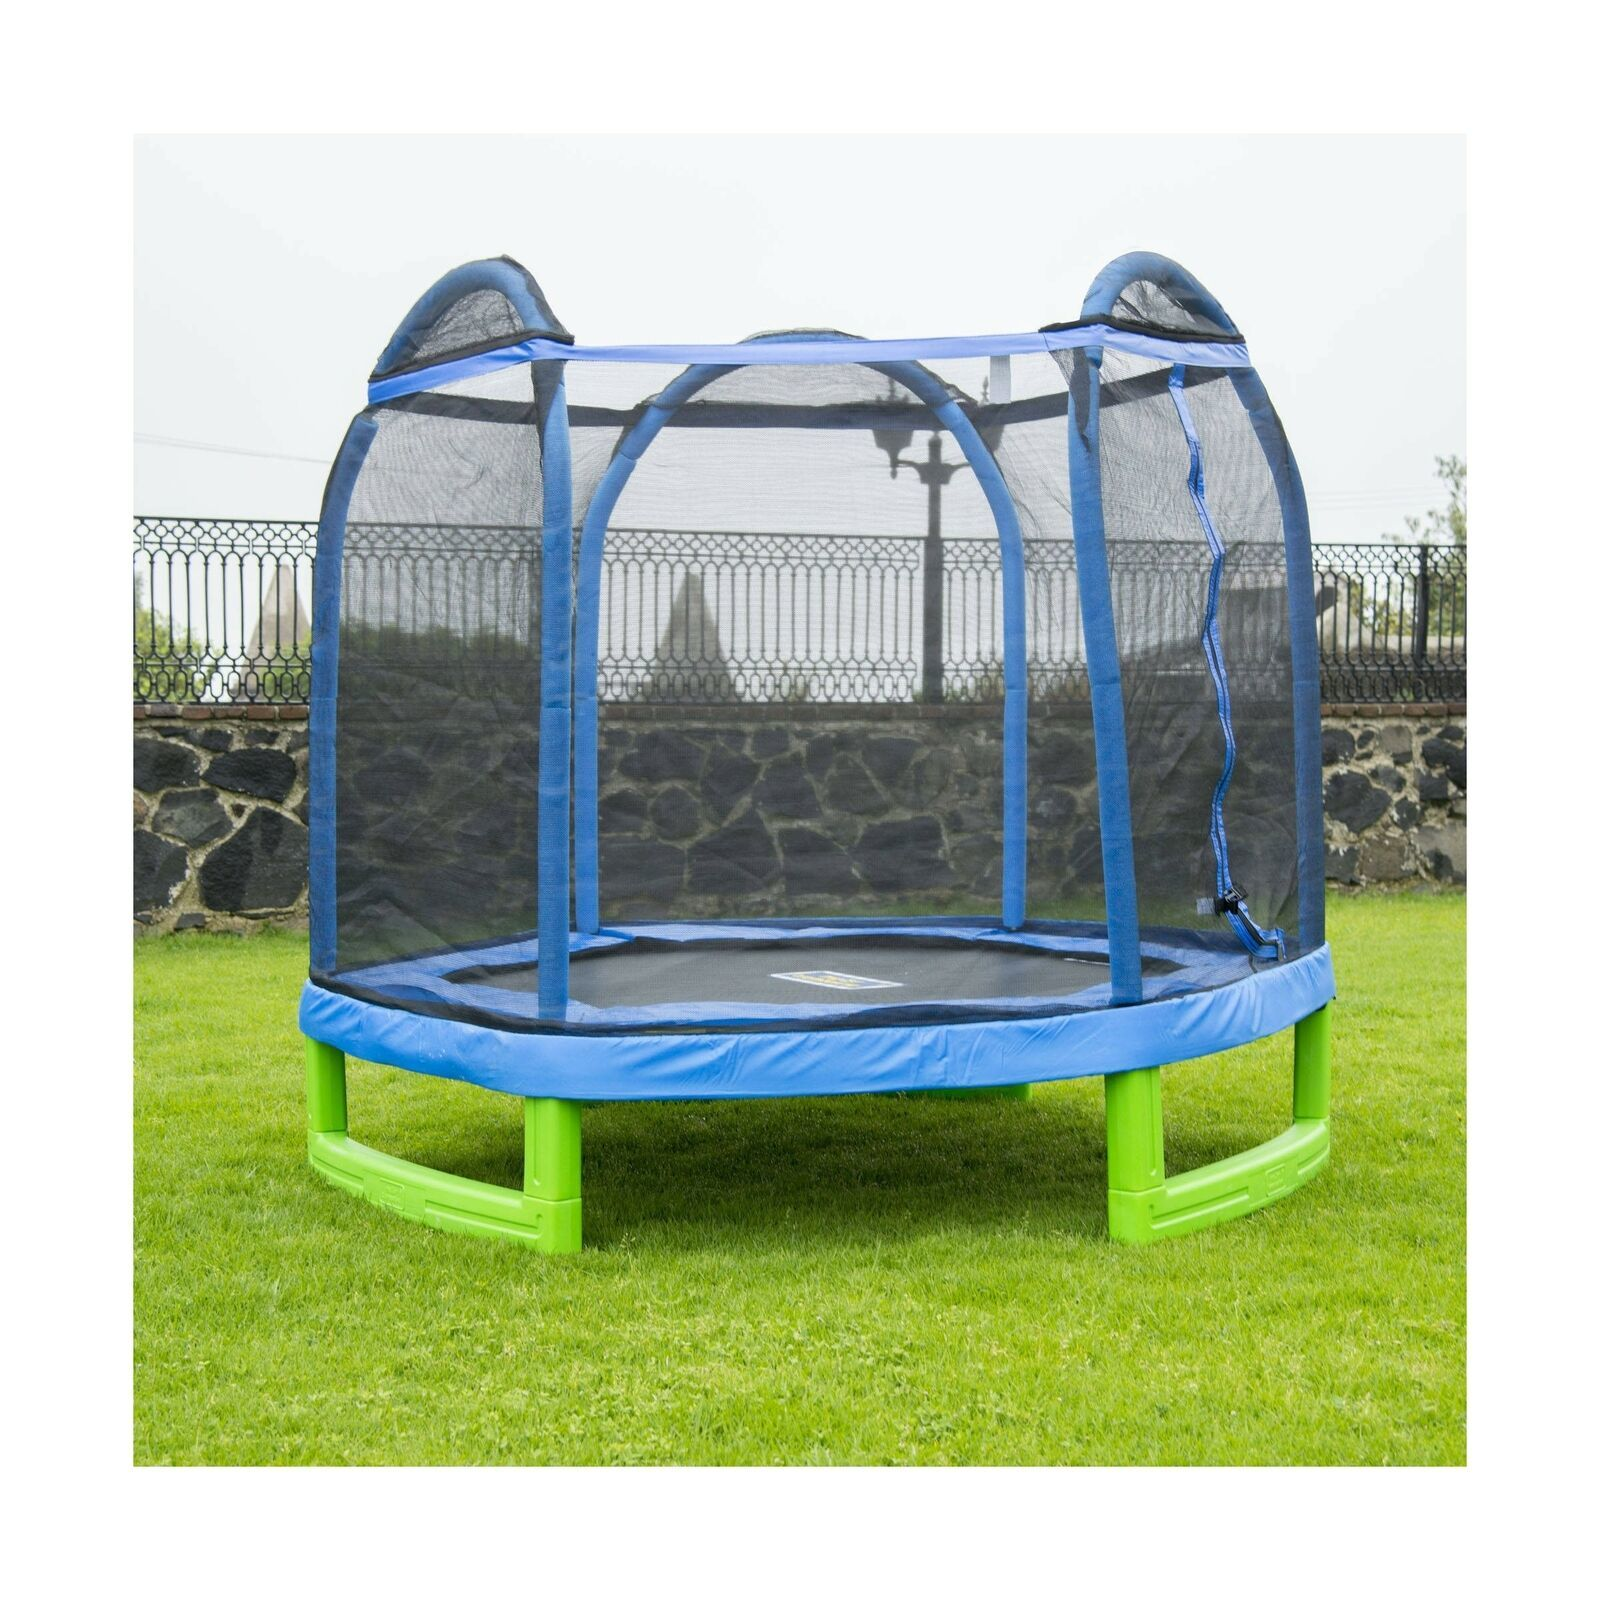 Trampoline Parts Center Coupon Code: Bounce Pro 7-Foot My First Trampoline Hexagon (Ages 3-10